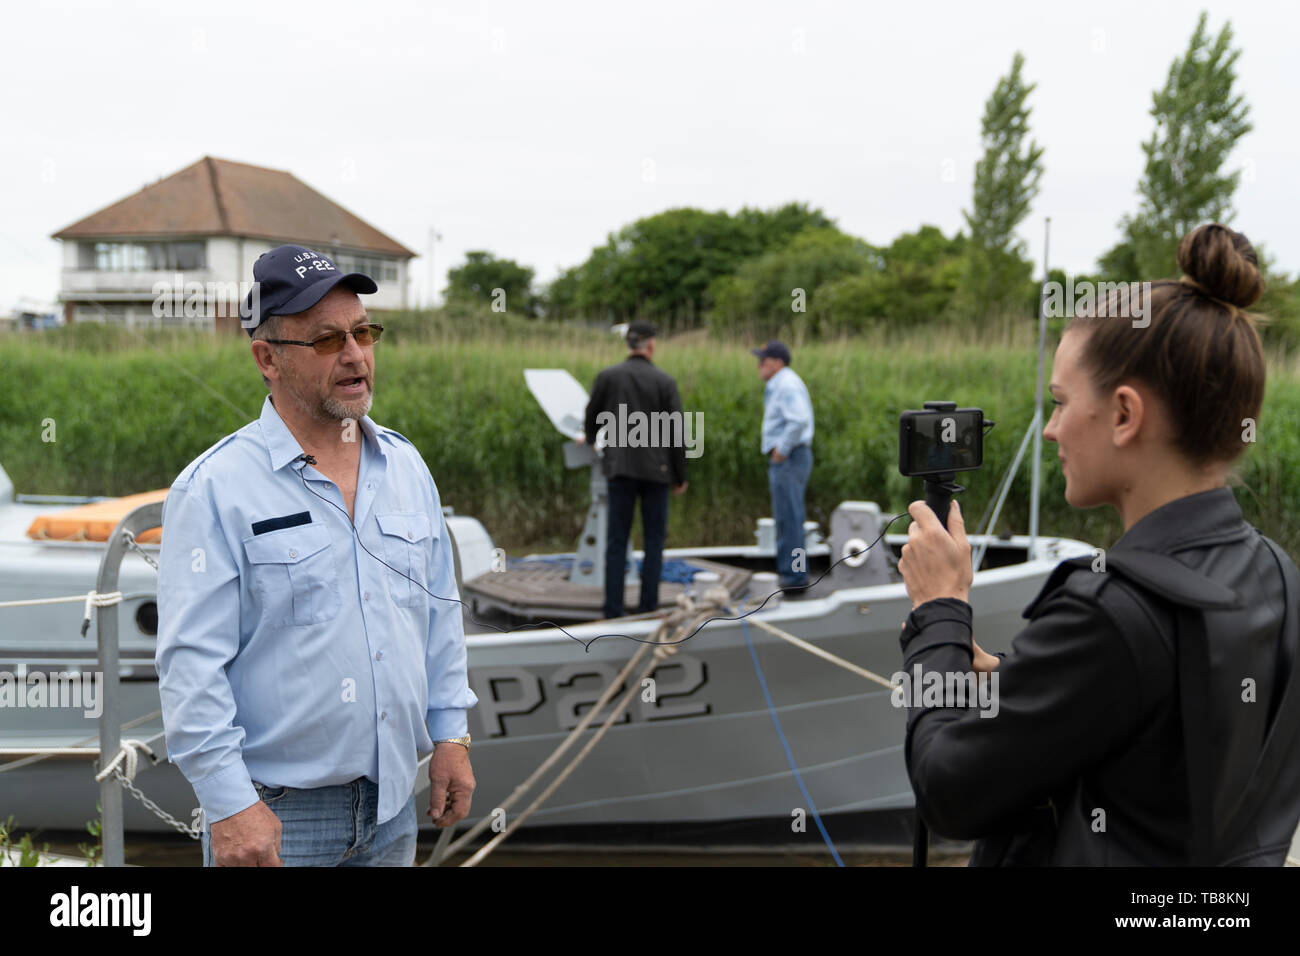 Mature Caucasian man being interviewed by young women with small video camera and microphone. Small motor launch on river quayside in background. Barry Field, captain and owner of P22, a restored Rhine Patrol Boat, being interviewed just before sailing to France for the 75th anniversary of the D-Day landings. Stock Photo